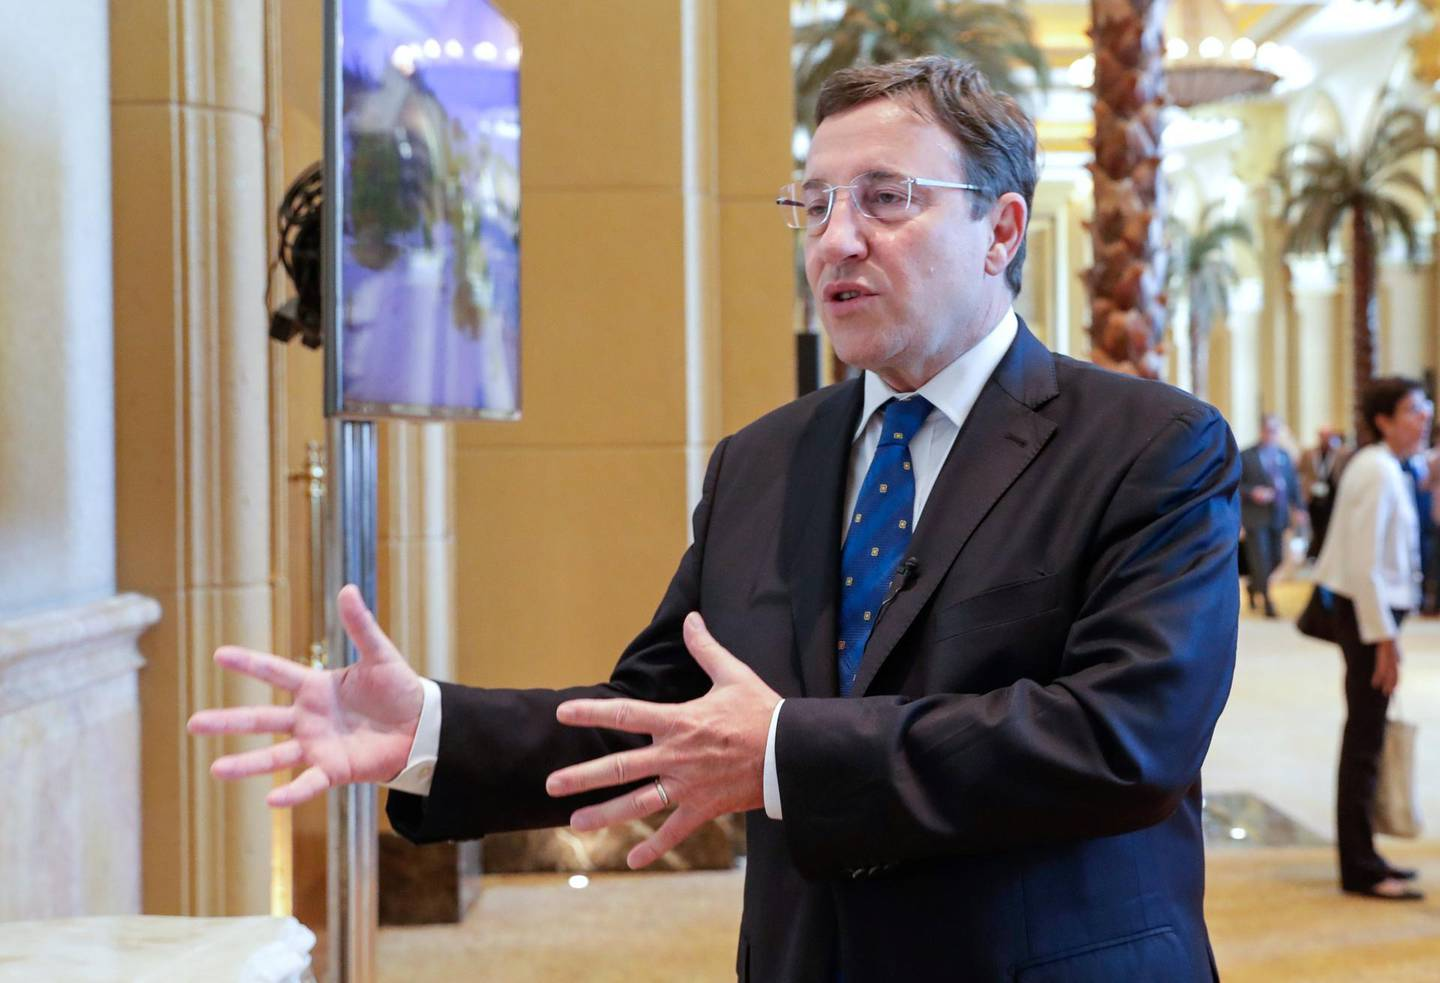 Abu Dhabi, United Arab Emirates, June 30, 2019.   Abu Dhabi Climate Meeting at the Emirates Palace.-- Achim Steiner, Administrateur, Programme des Nation Unies pour le developpement.  Victor Besa/The NationalSection:  NAReporter:  John Dennehy